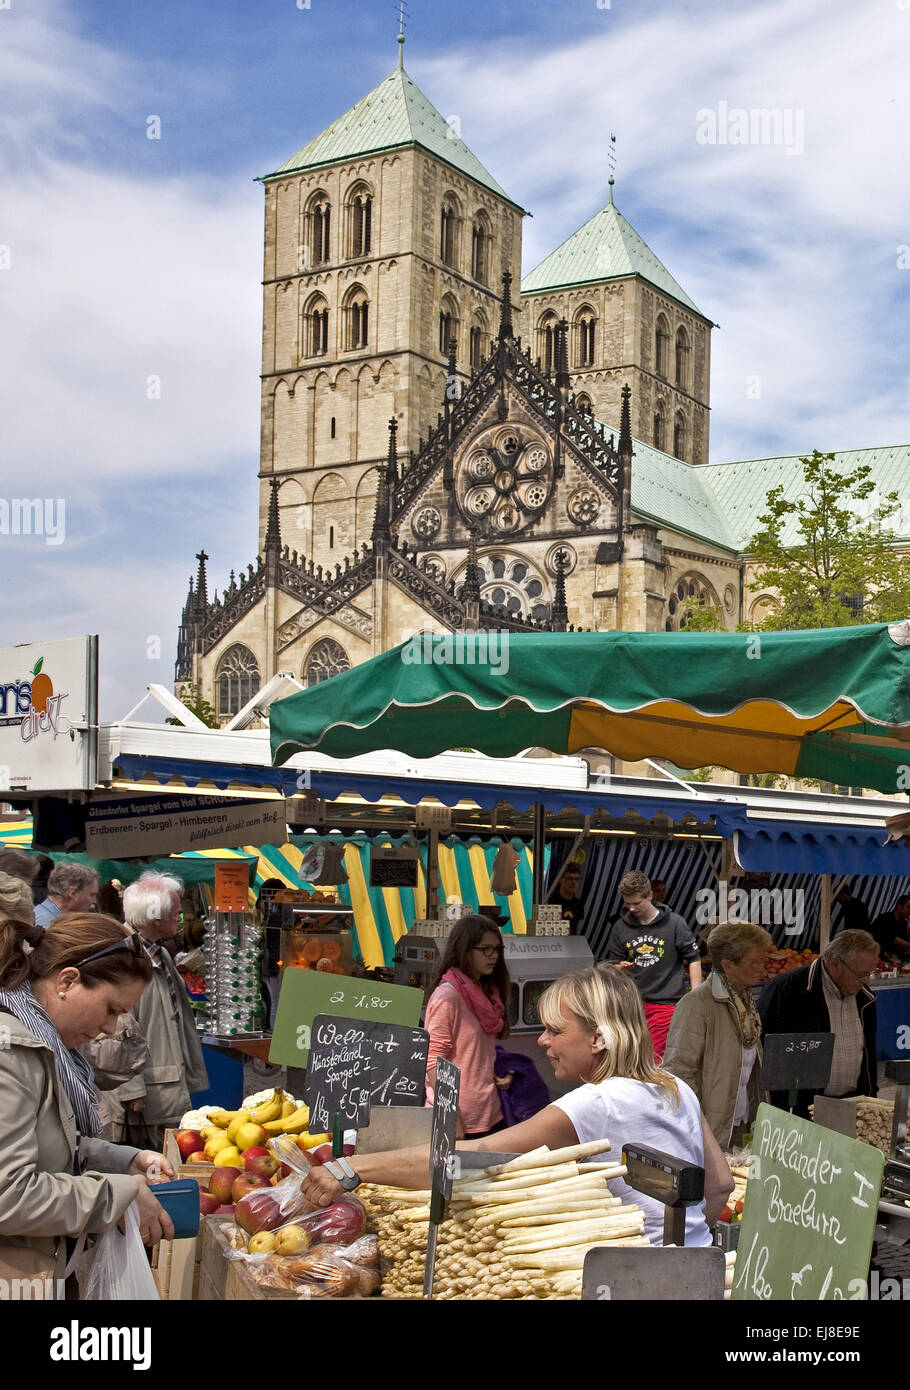 Weekly market, Dom, Muenster, Germany - Stock Image